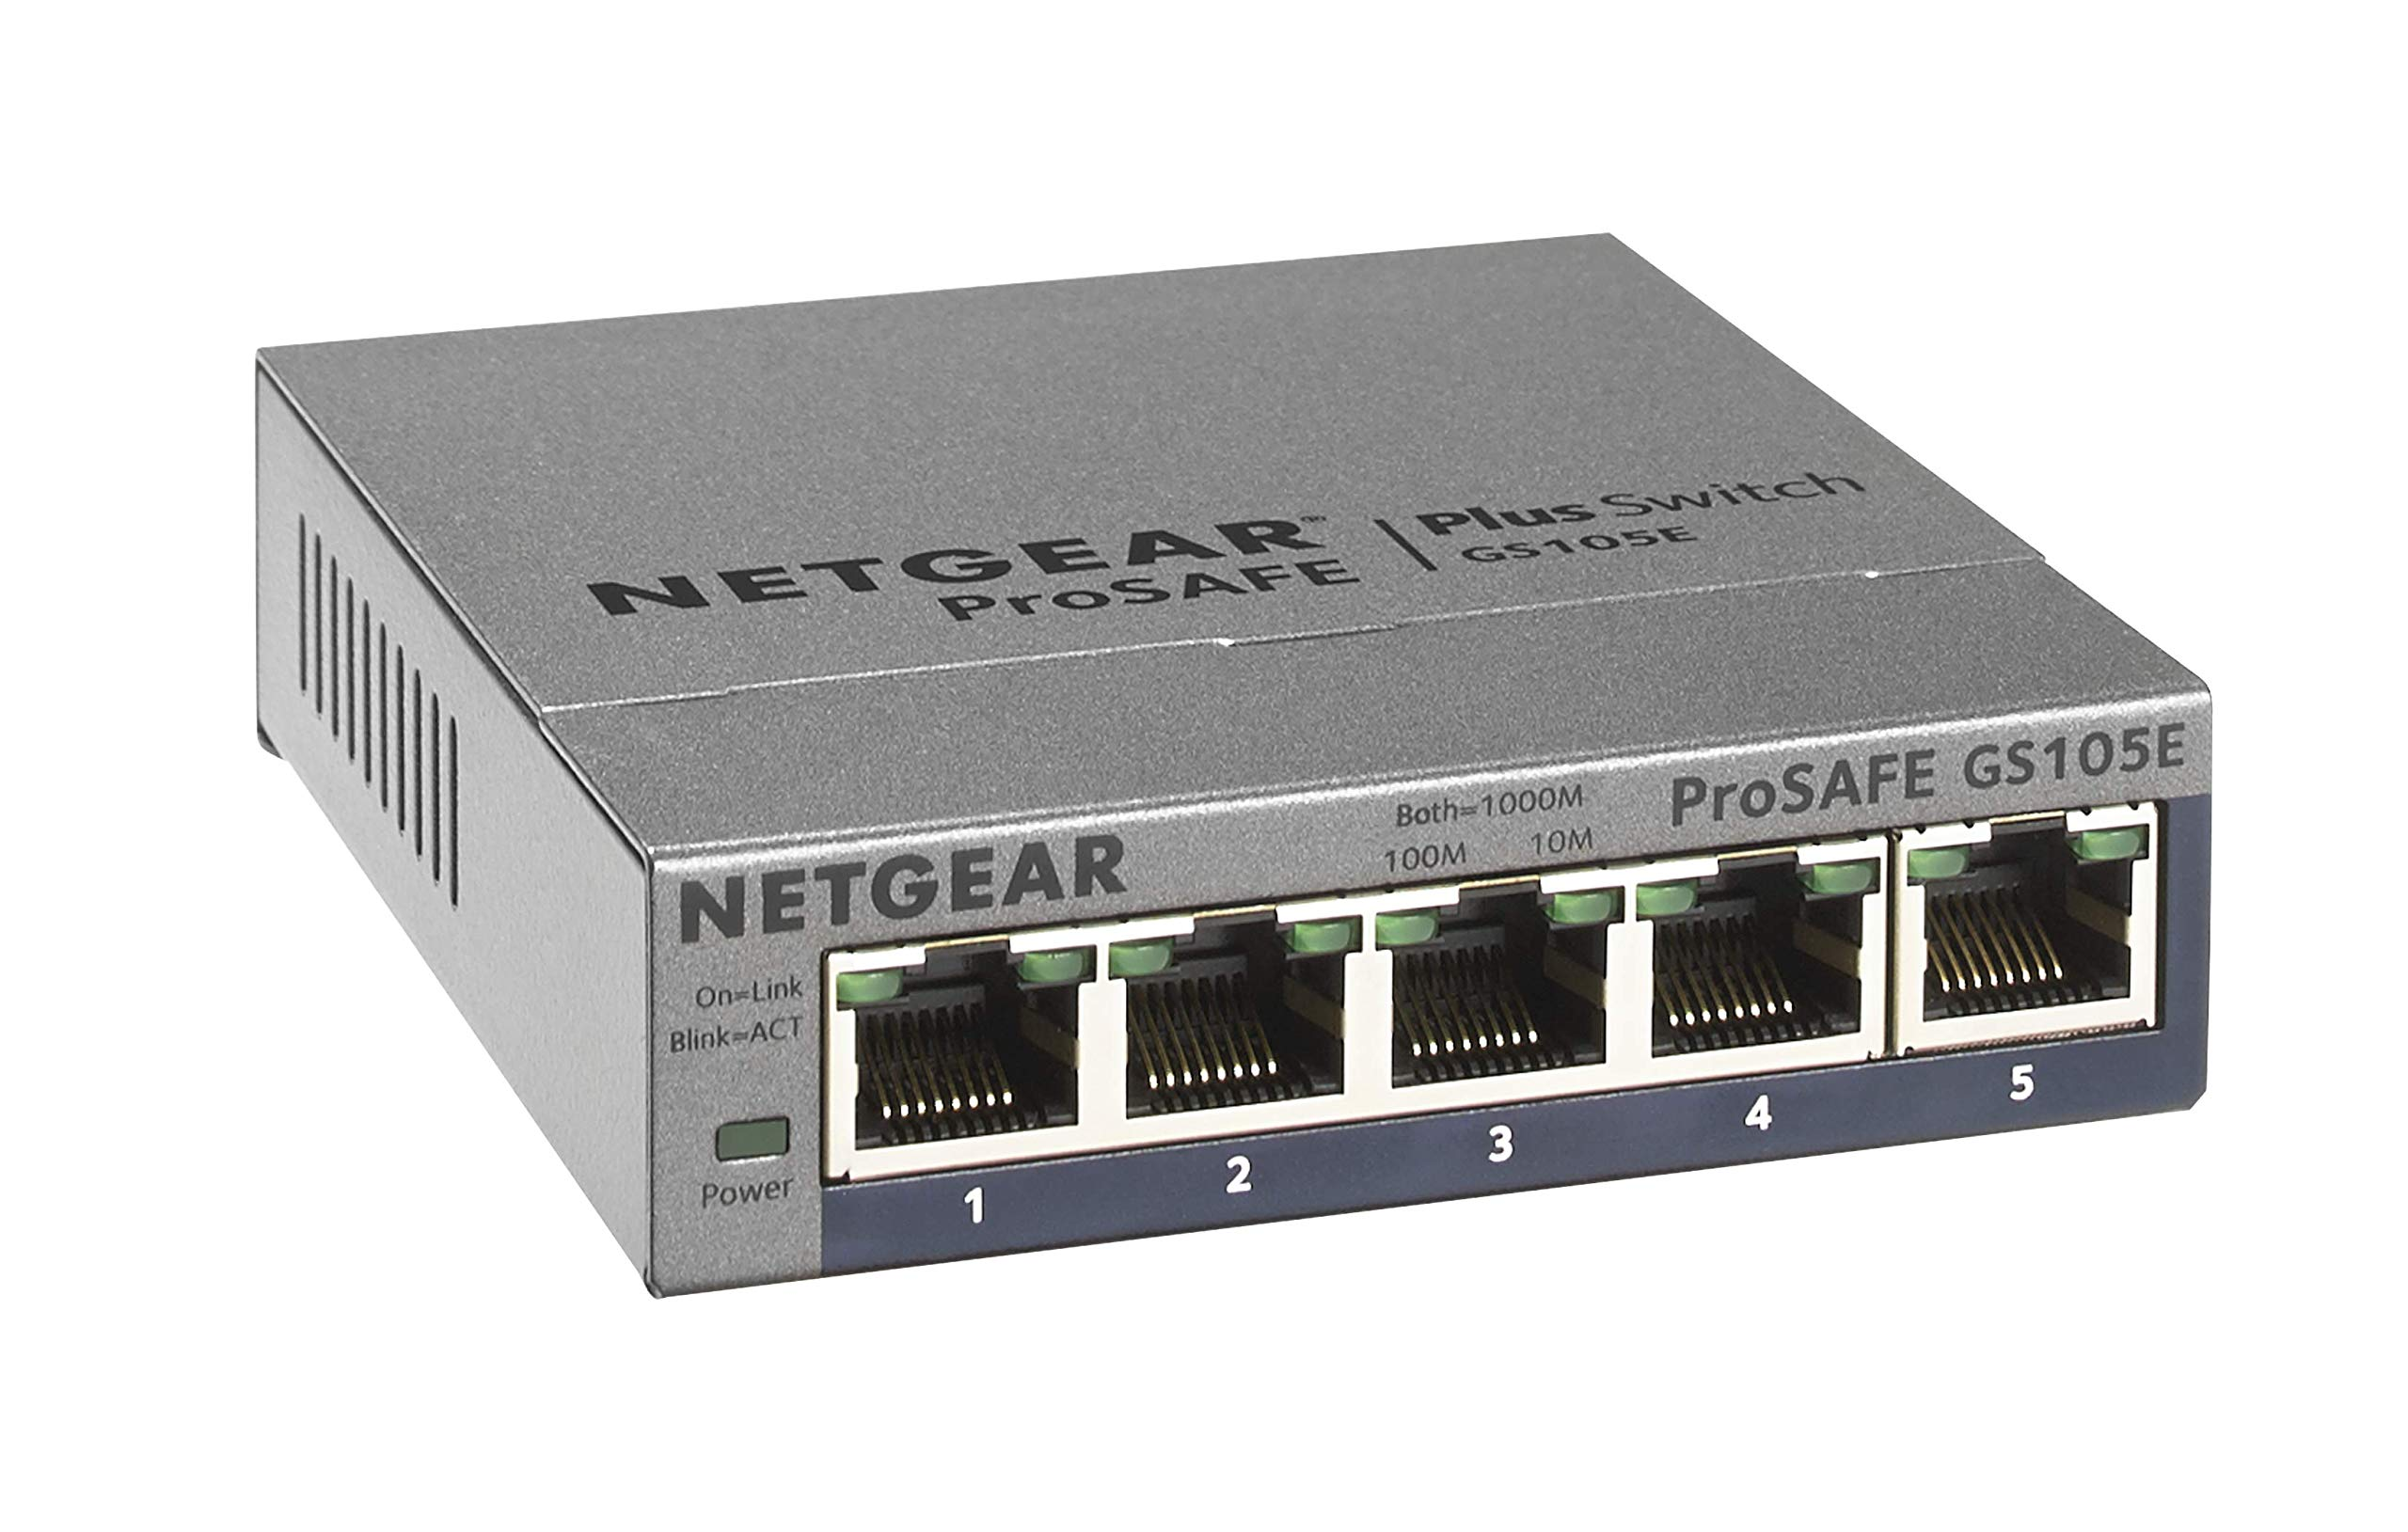 NETGEAR 5-Port Gigabit Ethernet Smart Managed Plus Switch (GS105Ev2) - Desktop, and ProSAFE Limited Lifetime Protection by NETGEAR